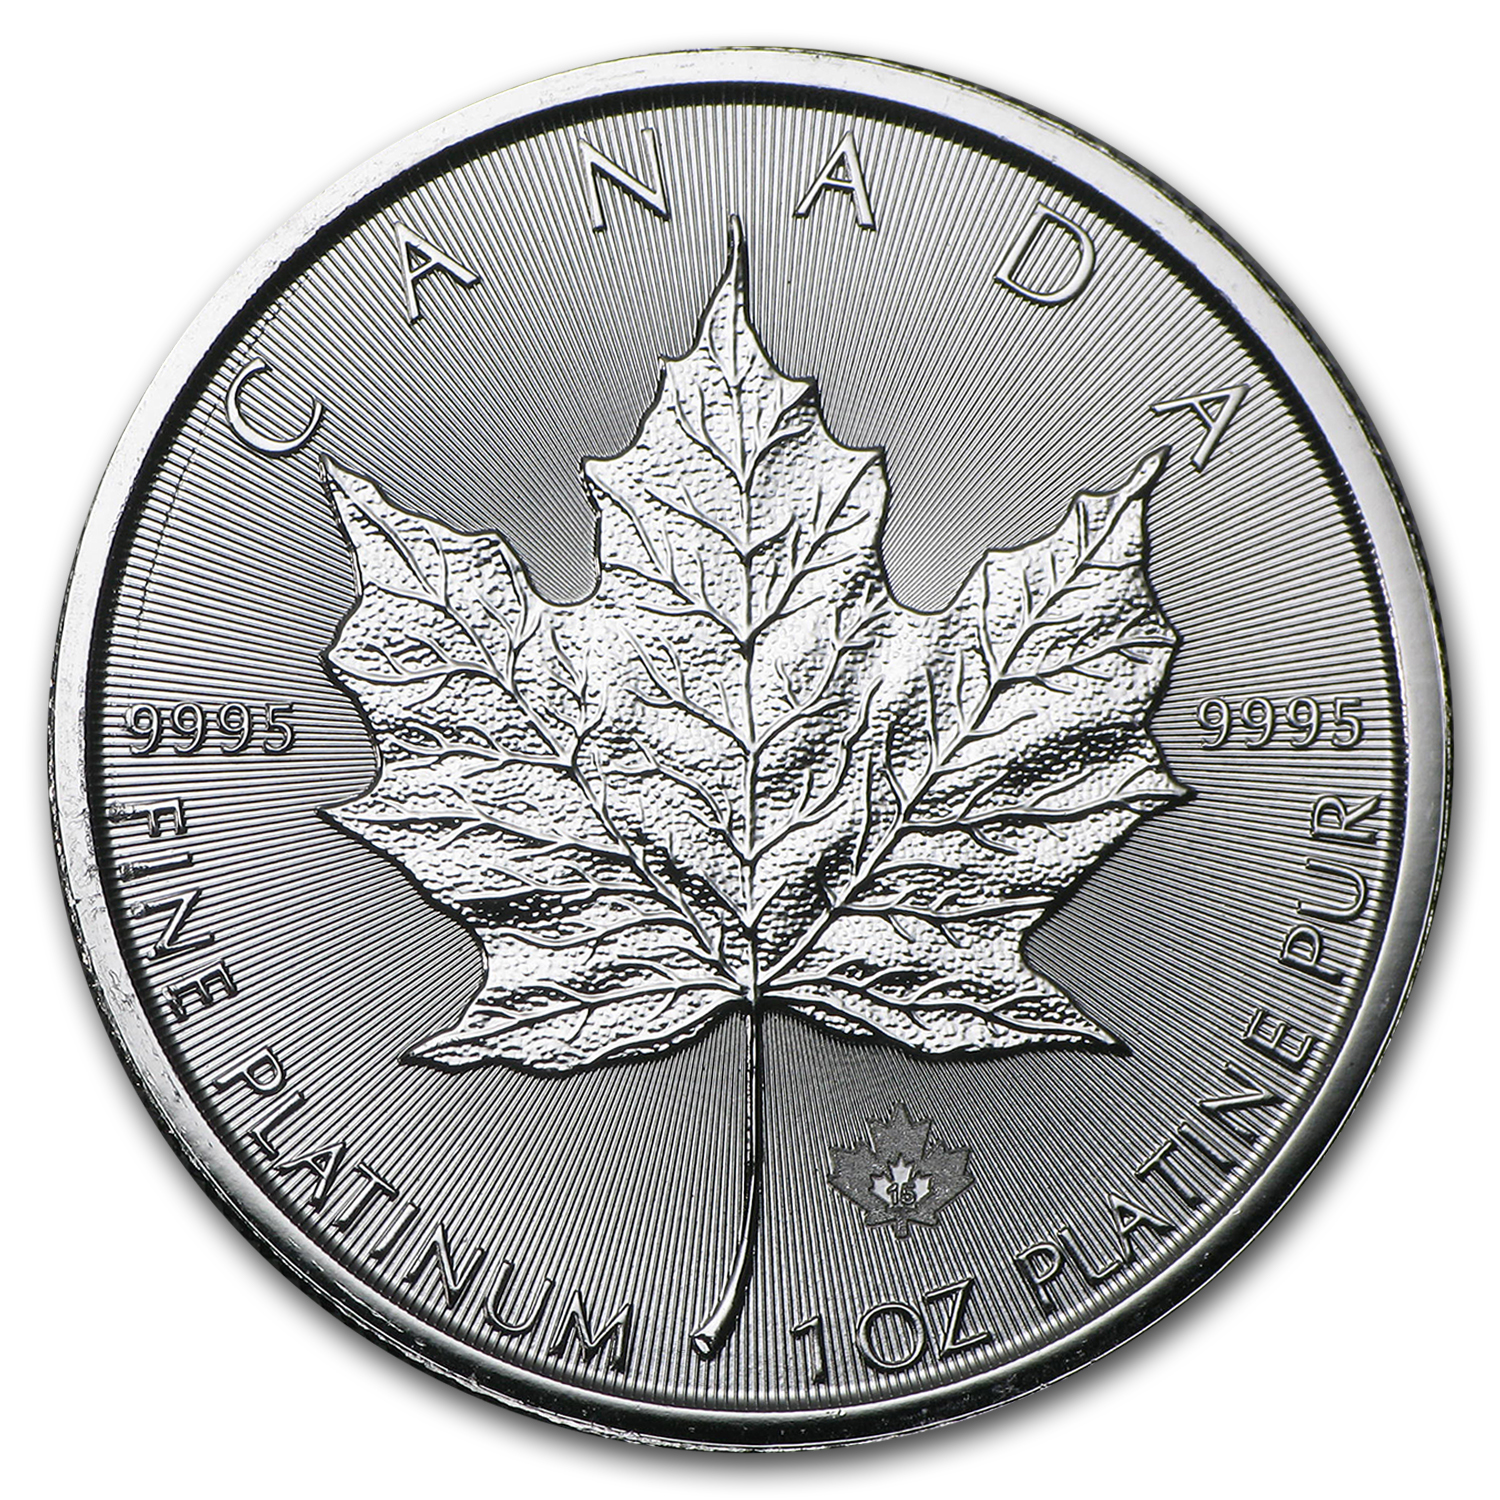 2015 Canada 1 oz Platinum Maple Leaf BU